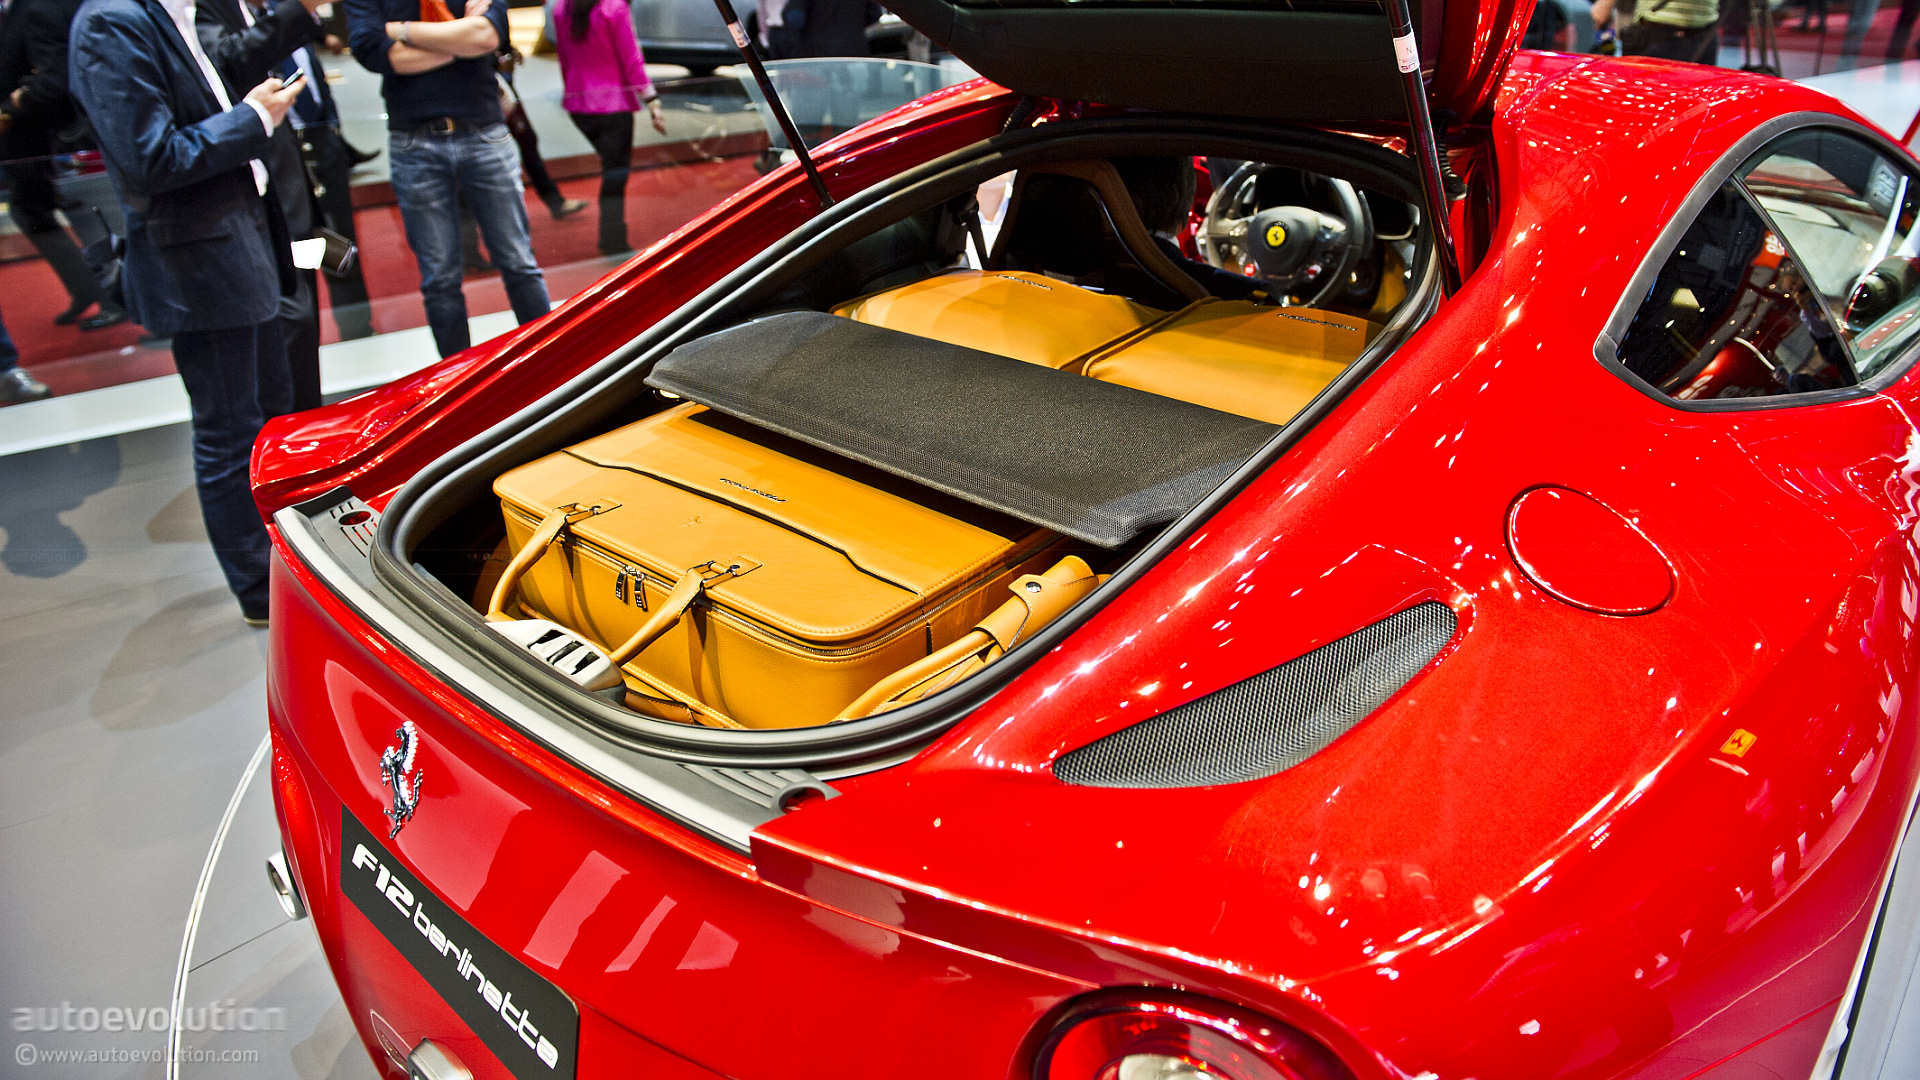 Ferrari F12 Berlinetta fitted luggage